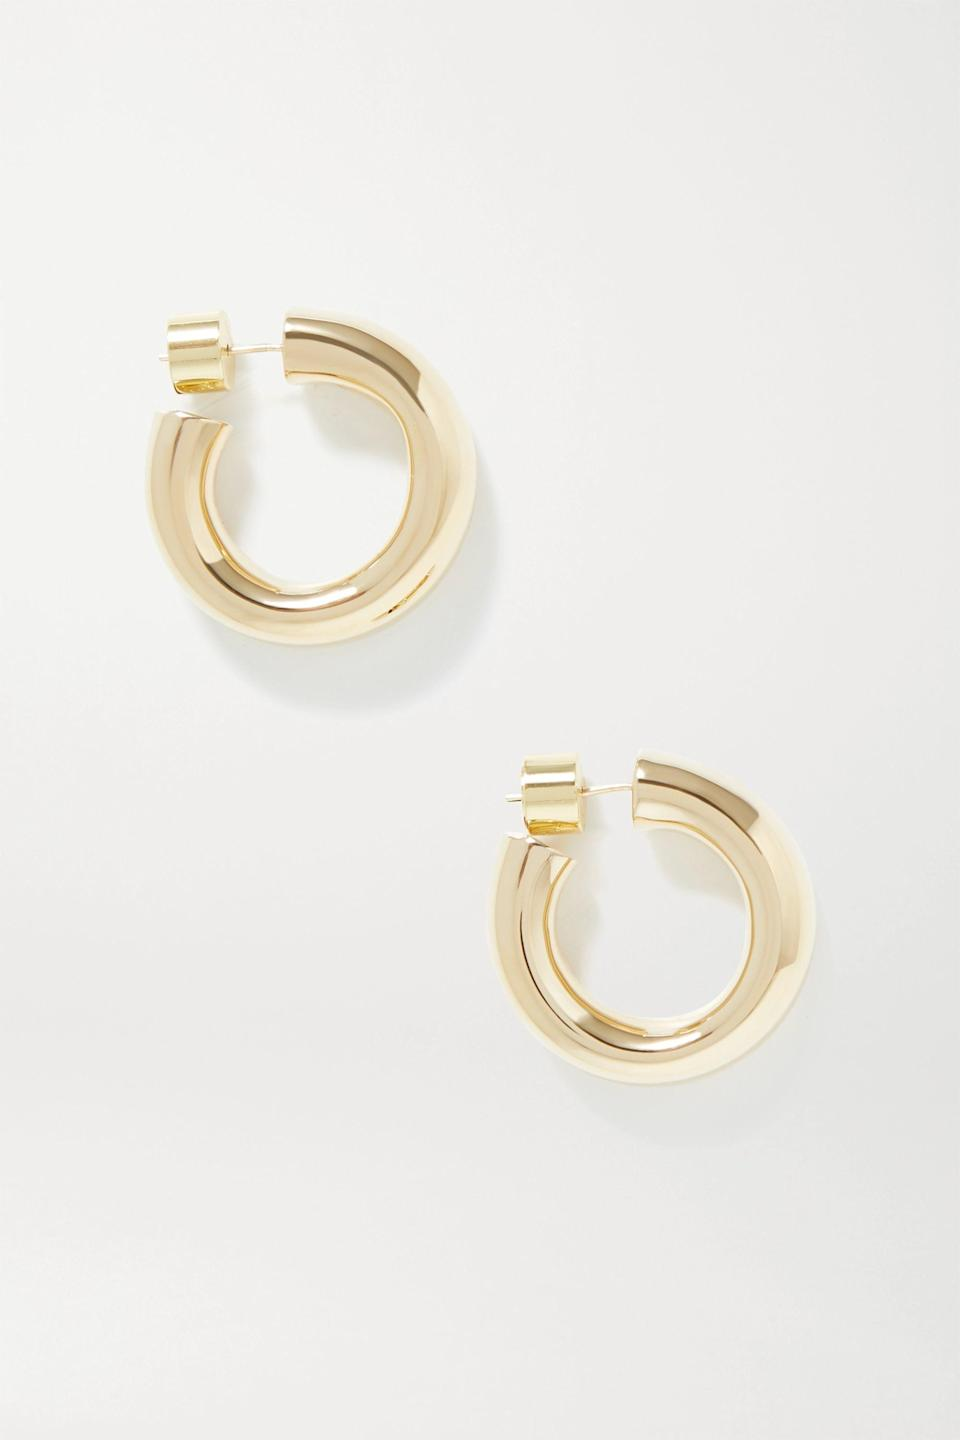 """<p><strong>Jennifer Fisher</strong></p><p>net-a-porter.com</p><p><strong>$285.00</strong></p><p><a href=""""https://go.redirectingat.com?id=74968X1596630&url=https%3A%2F%2Fwww.net-a-porter.com%2Fen-us%2Fshop%2Fproduct%2Fjennifer-fisher%2Fkevin-gold-plated-hoop-earrings%2F1280228&sref=https%3A%2F%2Fwww.townandcountrymag.com%2Fstyle%2Fjewelry-and-watches%2Fg34741522%2Fbest-jewelry-gift-ideas%2F"""" rel=""""nofollow noopener"""" target=""""_blank"""" data-ylk=""""slk:Shop Now"""" class=""""link rapid-noclick-resp"""">Shop Now</a></p><p>Jennifer Fisher makes the absolute best hoop earrings. We particularly like a chunky gold style for holiday, but you can't go wrong with any of these hoops. </p><p>More: <a href=""""https://www.townandcountrymag.com/style/fashion-trends/g34286384/chunky-gold-jewelry/"""" rel=""""nofollow noopener"""" target=""""_blank"""" data-ylk=""""slk:10 Chunky Gold Jewelry Pieces to Wear Now"""" class=""""link rapid-noclick-resp"""">10 Chunky Gold Jewelry Pieces to Wear Now</a></p>"""